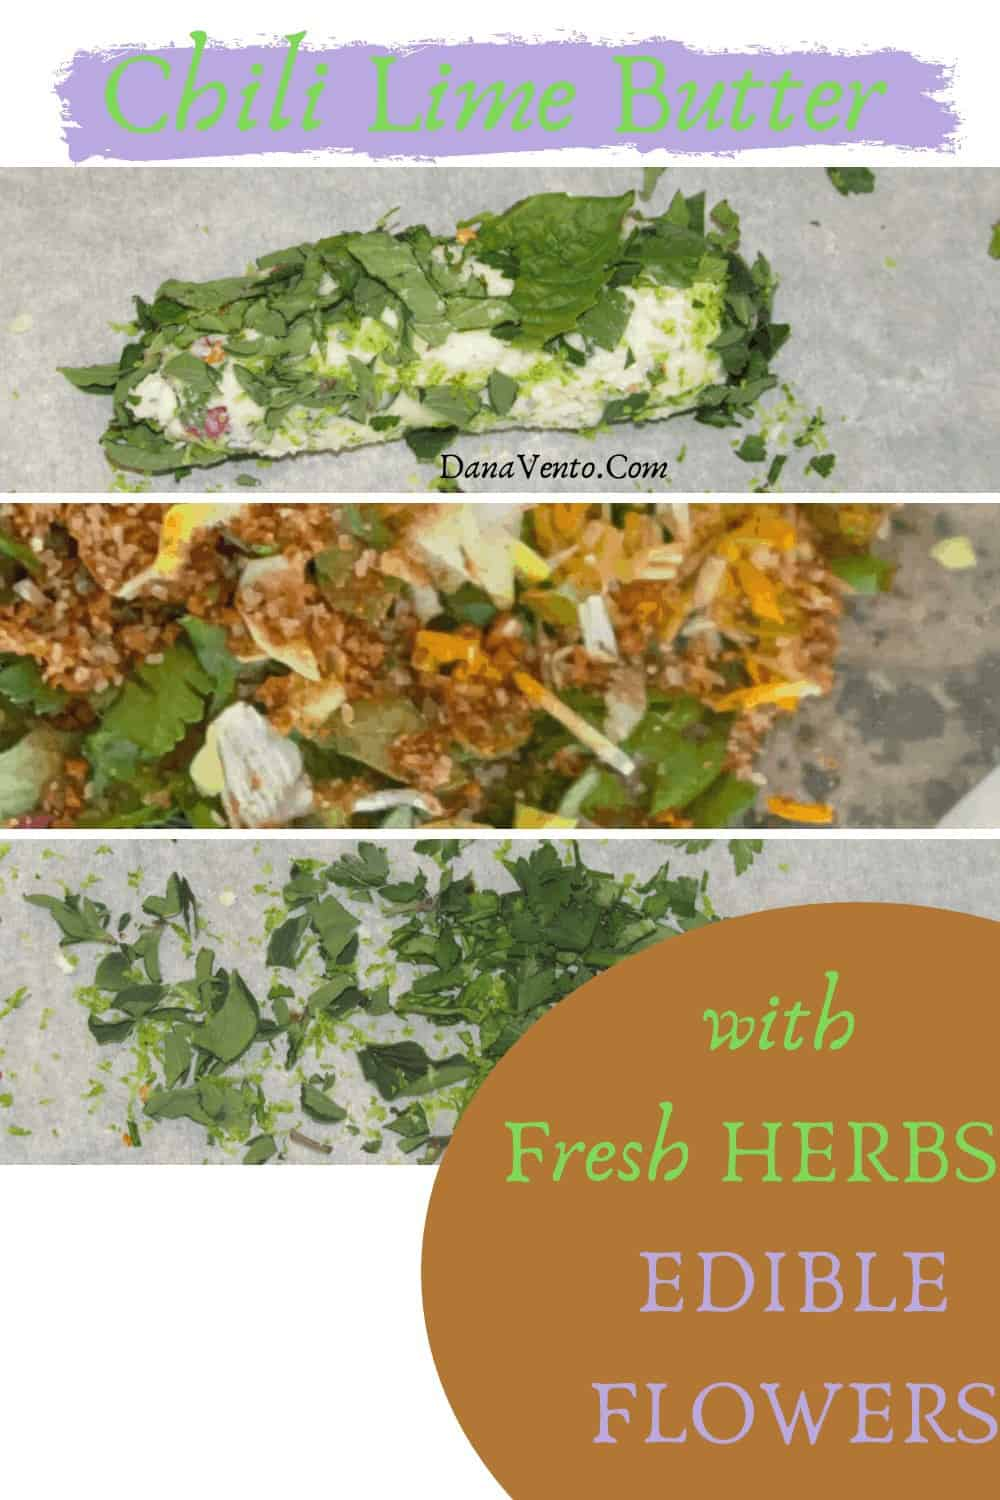 herbs and a roll of chili lime herb butter